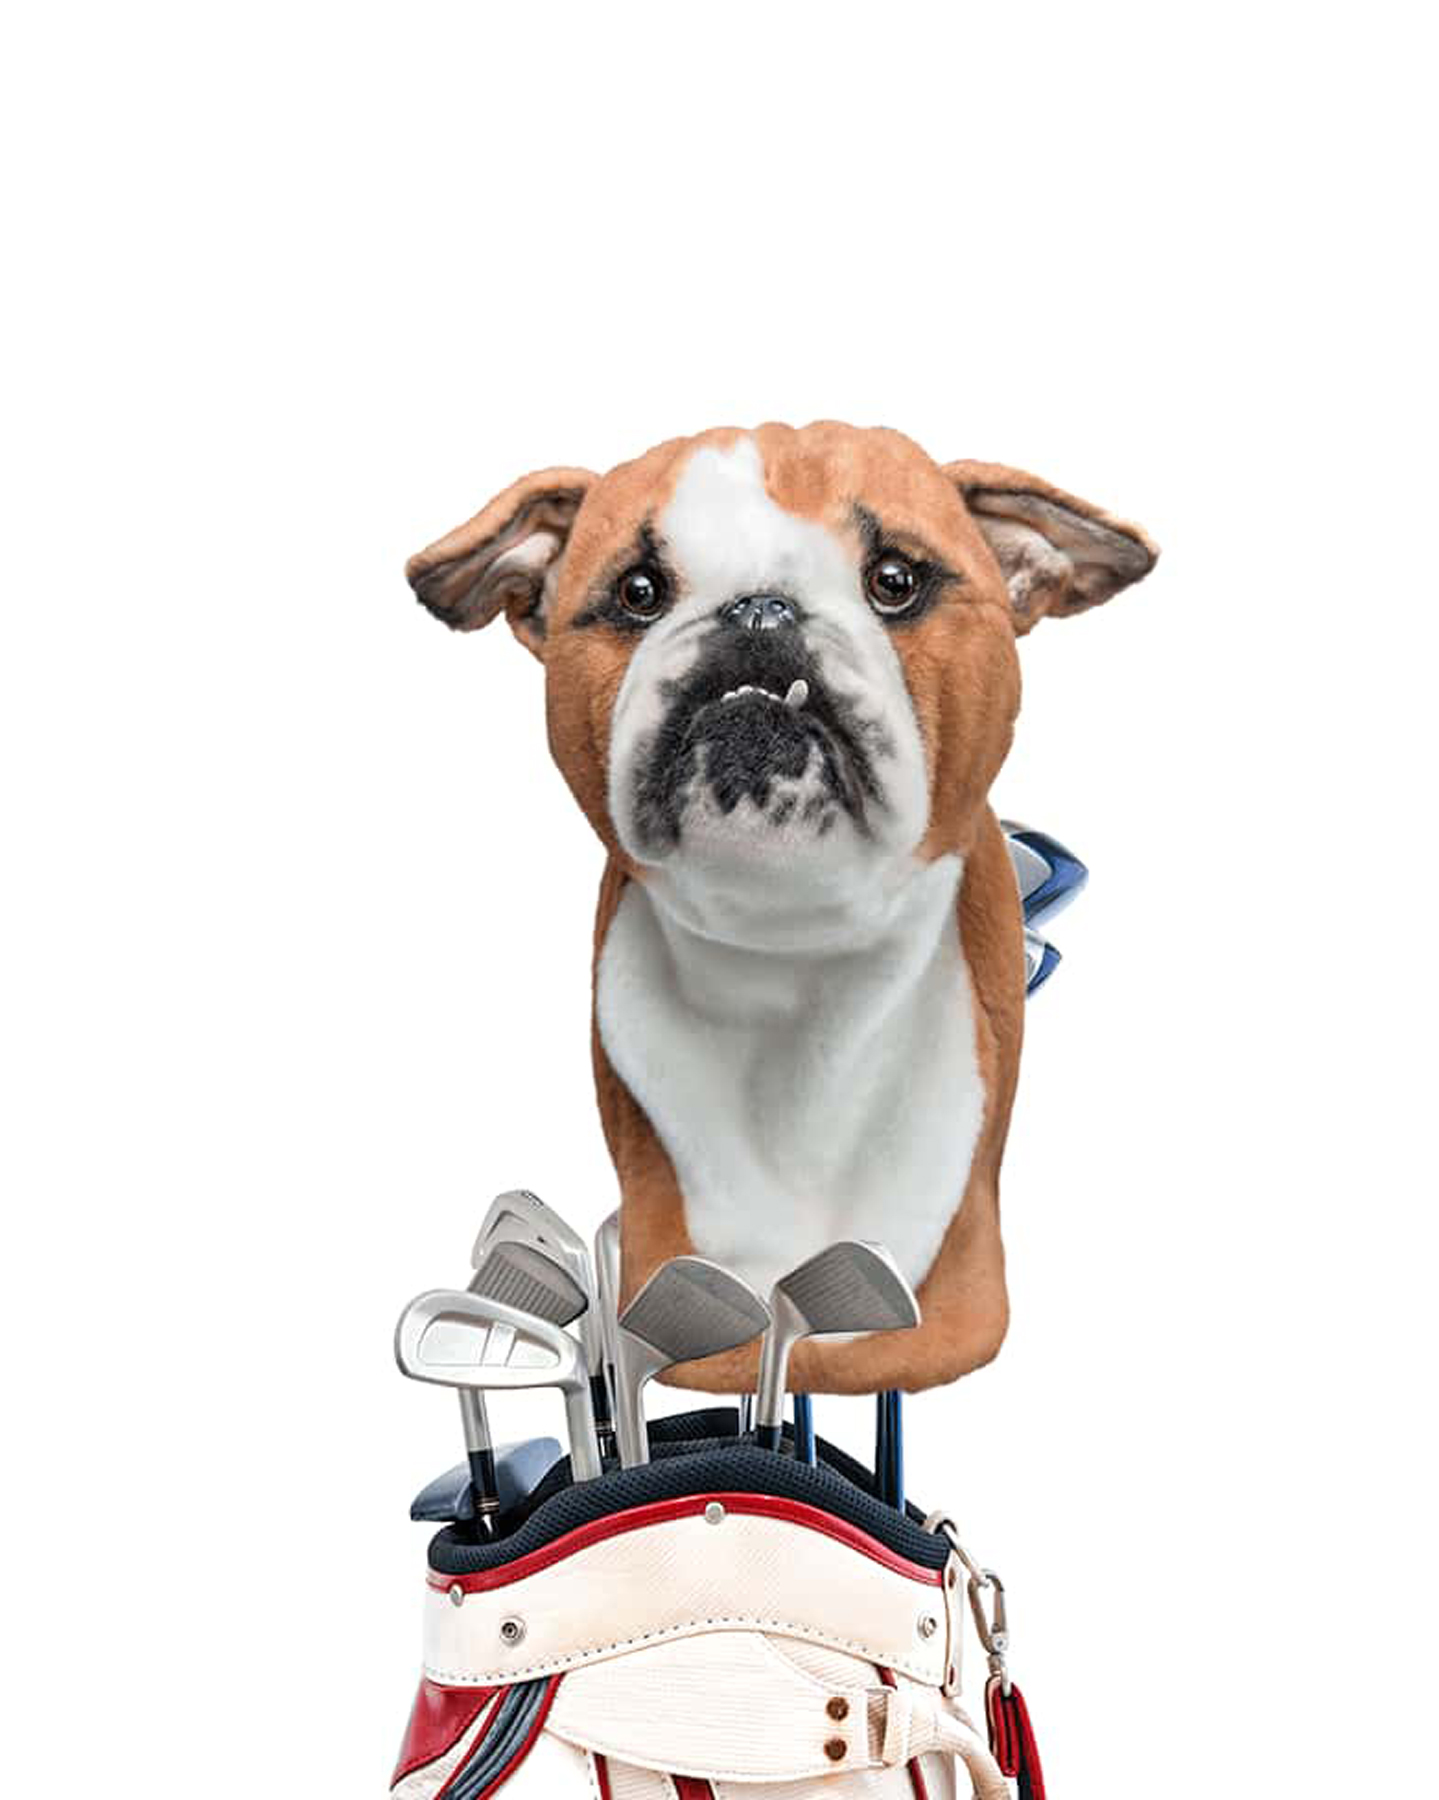 Funny gifts for men - Personalized Pet Golf Club Headcovers